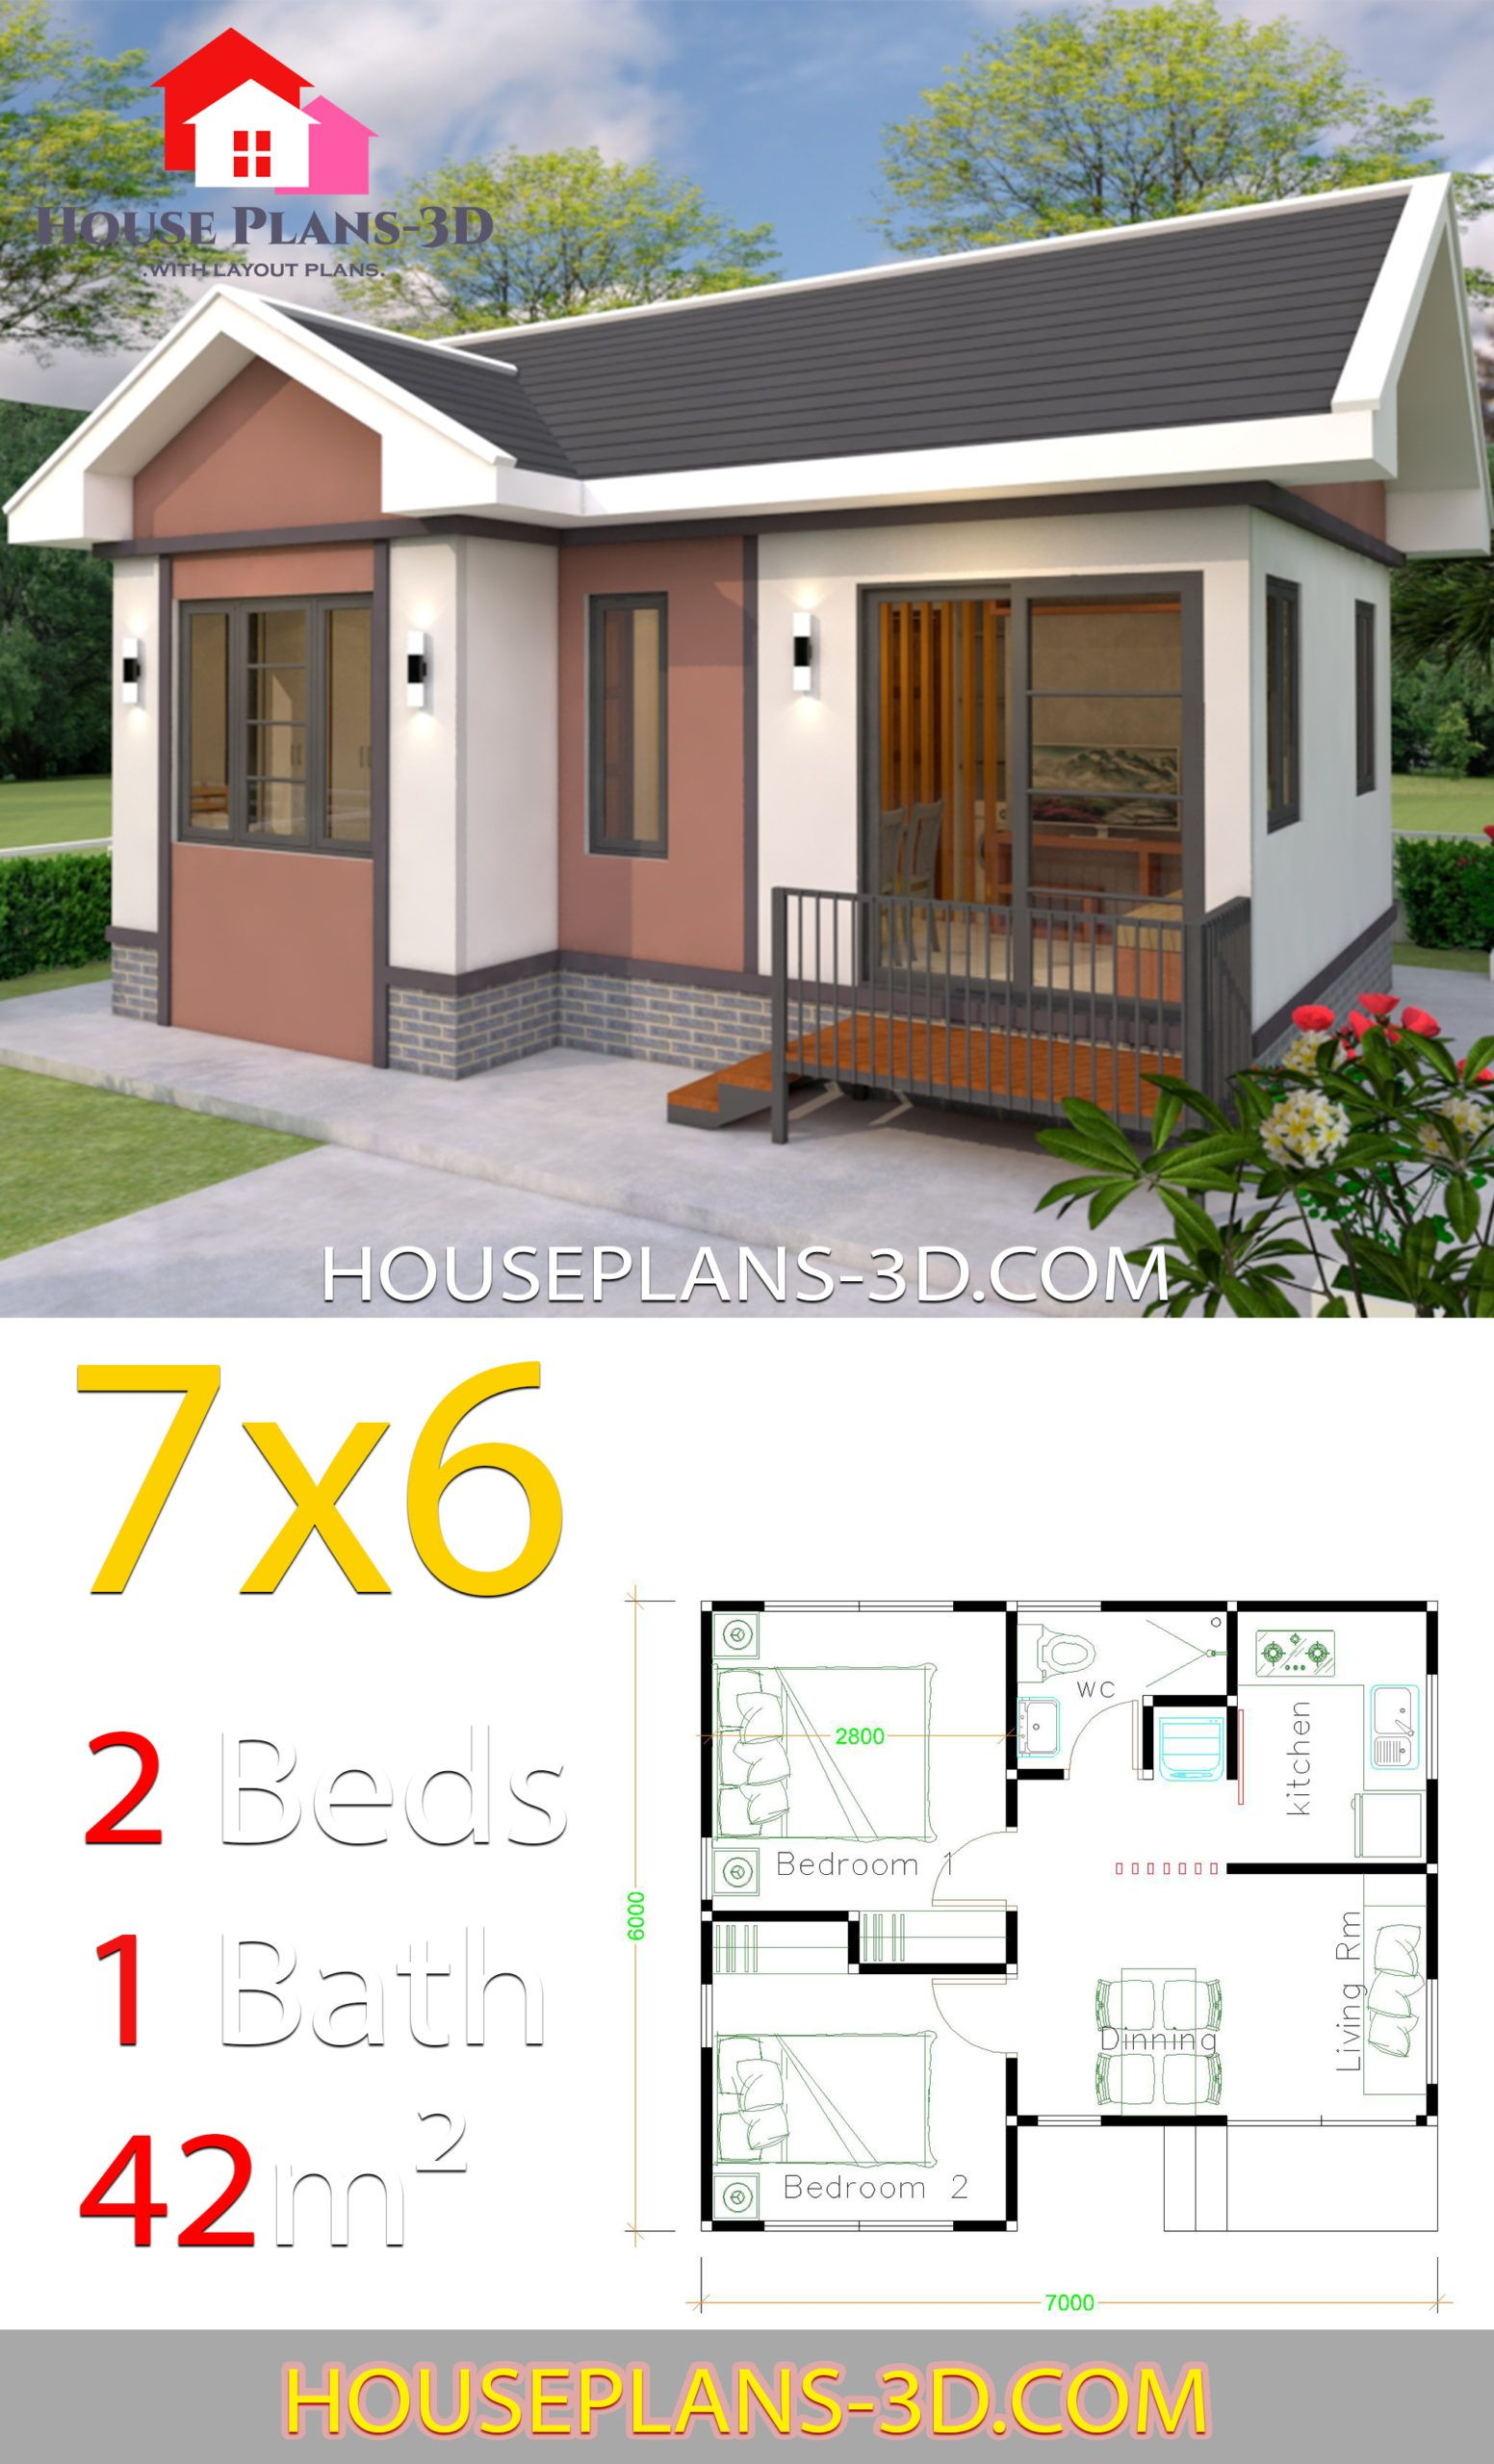 House Plans Design 7x6 With 2 Bedrooms Gable Roof House Plans 3d Diy House Plans House Plans Simple House Plans